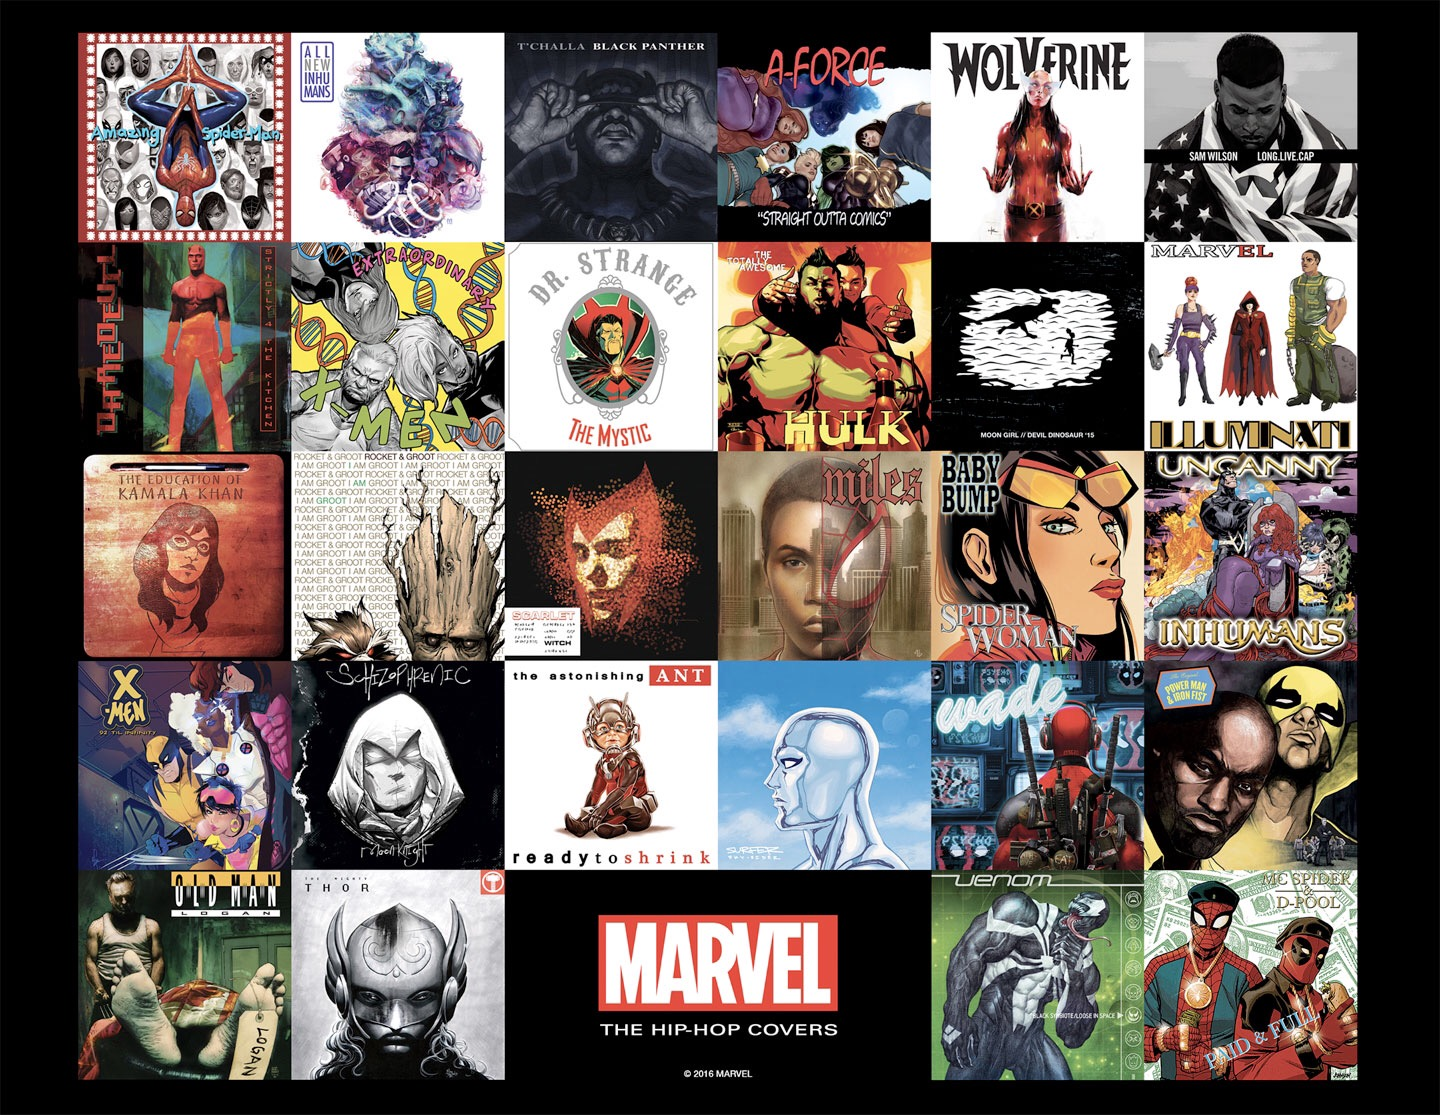 Marvel Beings Top Artistic Talent To NYCC For Hip-Hop Covers